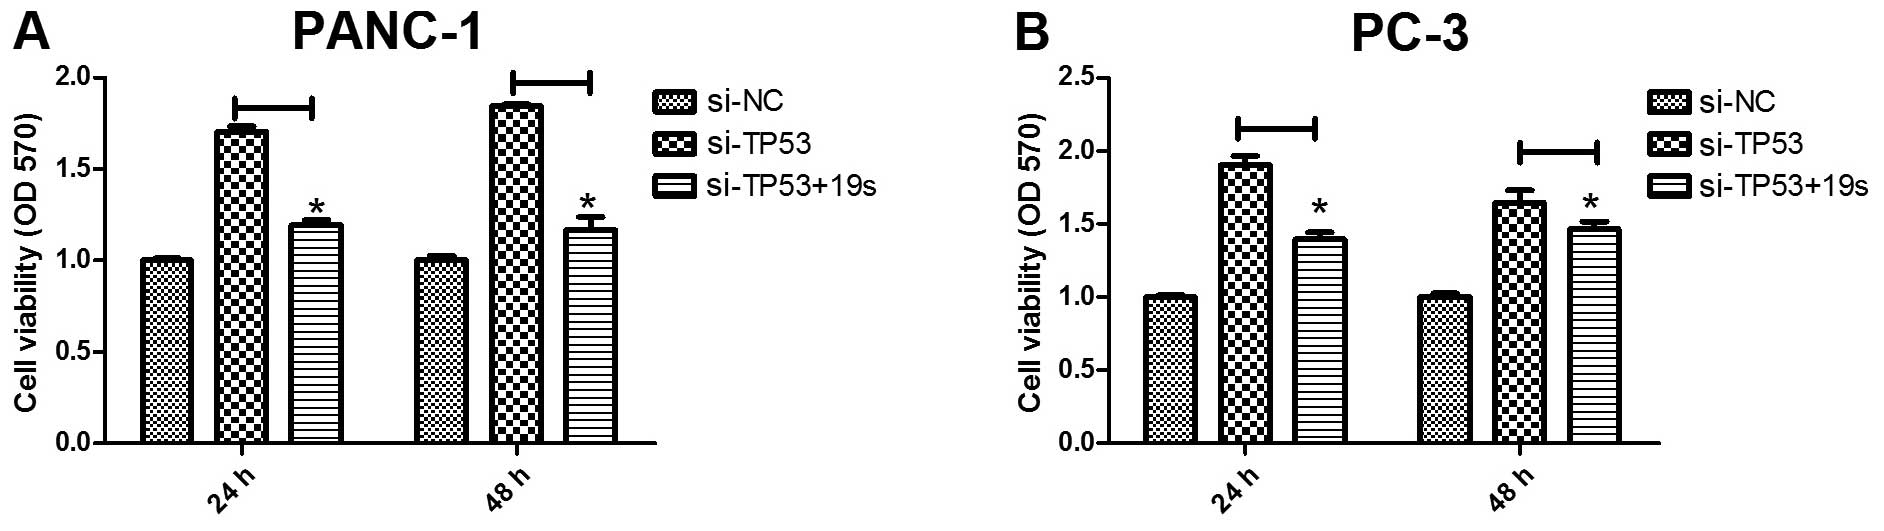 A Positive Feedback Loop Of P53 Mir 19 Tp53inp1 Modulates Pancreatic Komatsu Sk 714 Wiring Diagram Figure 2 19a B Partly Rescues The Effects Tp53 Protein In Cancer Cells Cell Proliferation Was Measured Panc 1 At 24 And 48